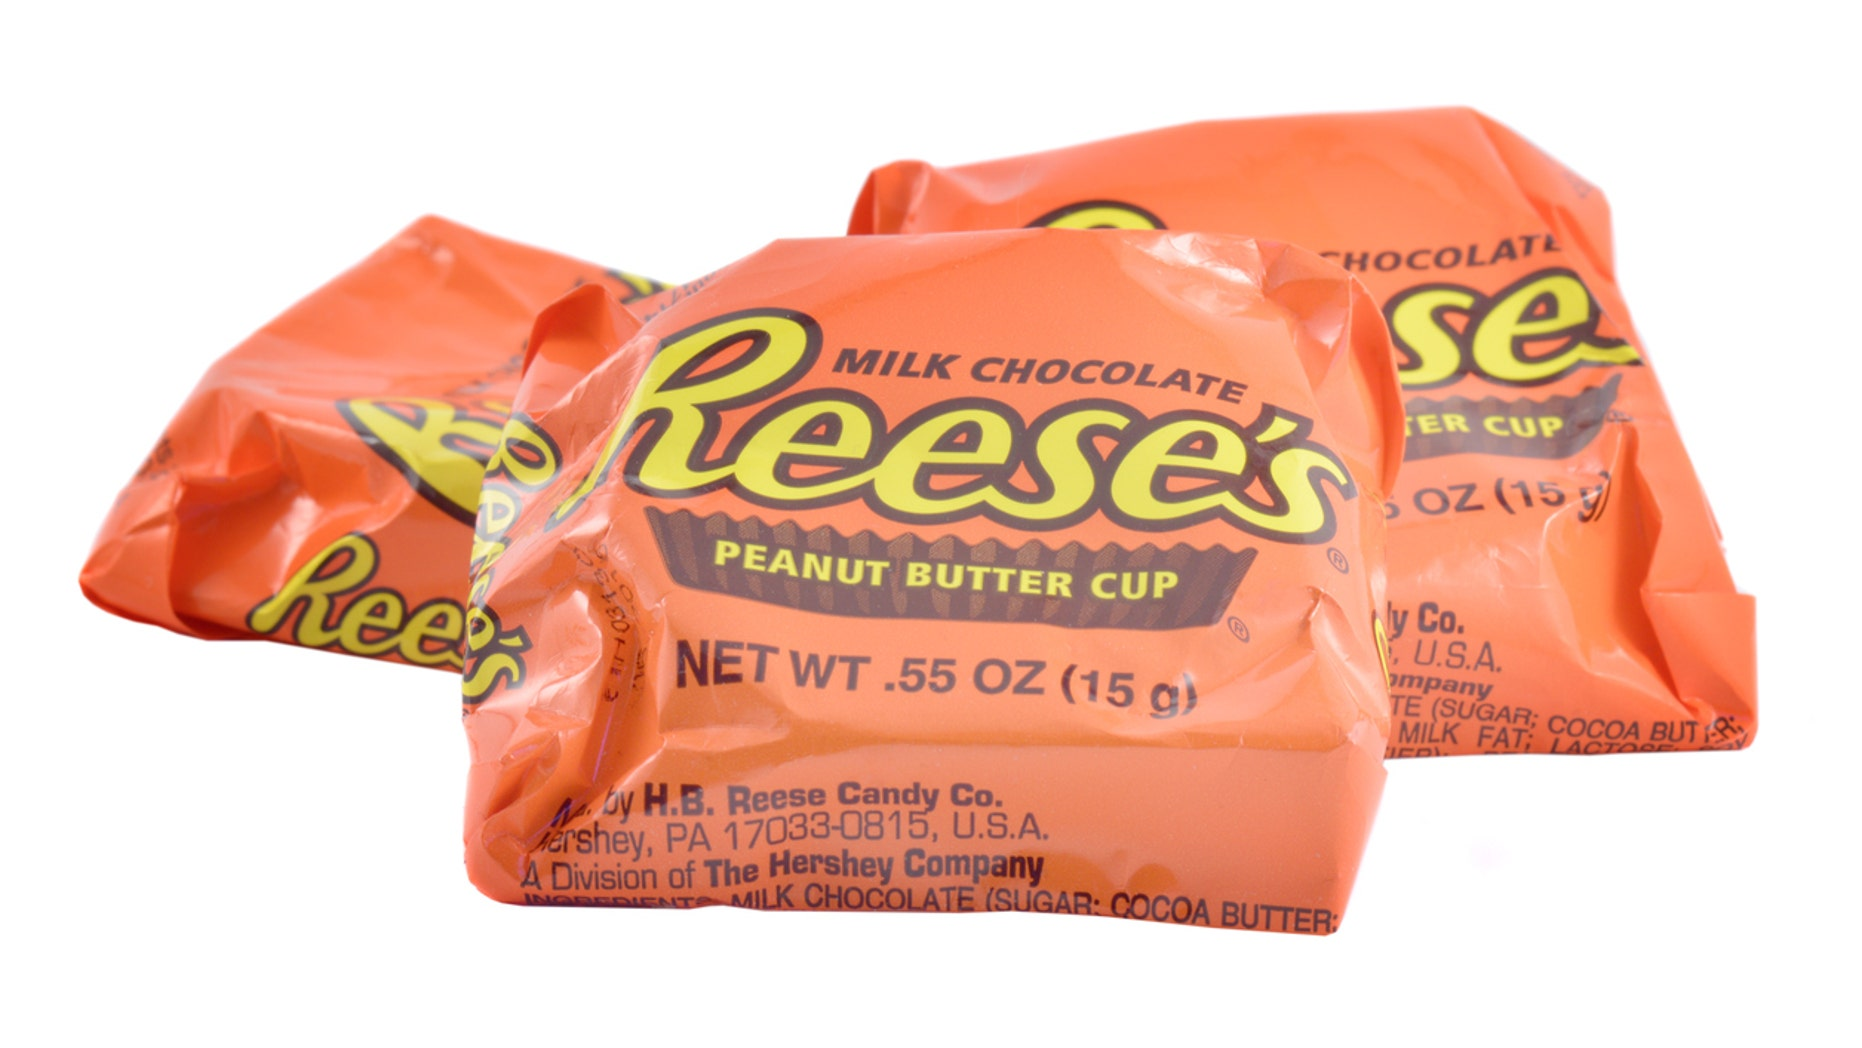 Are Reese's disappearing?